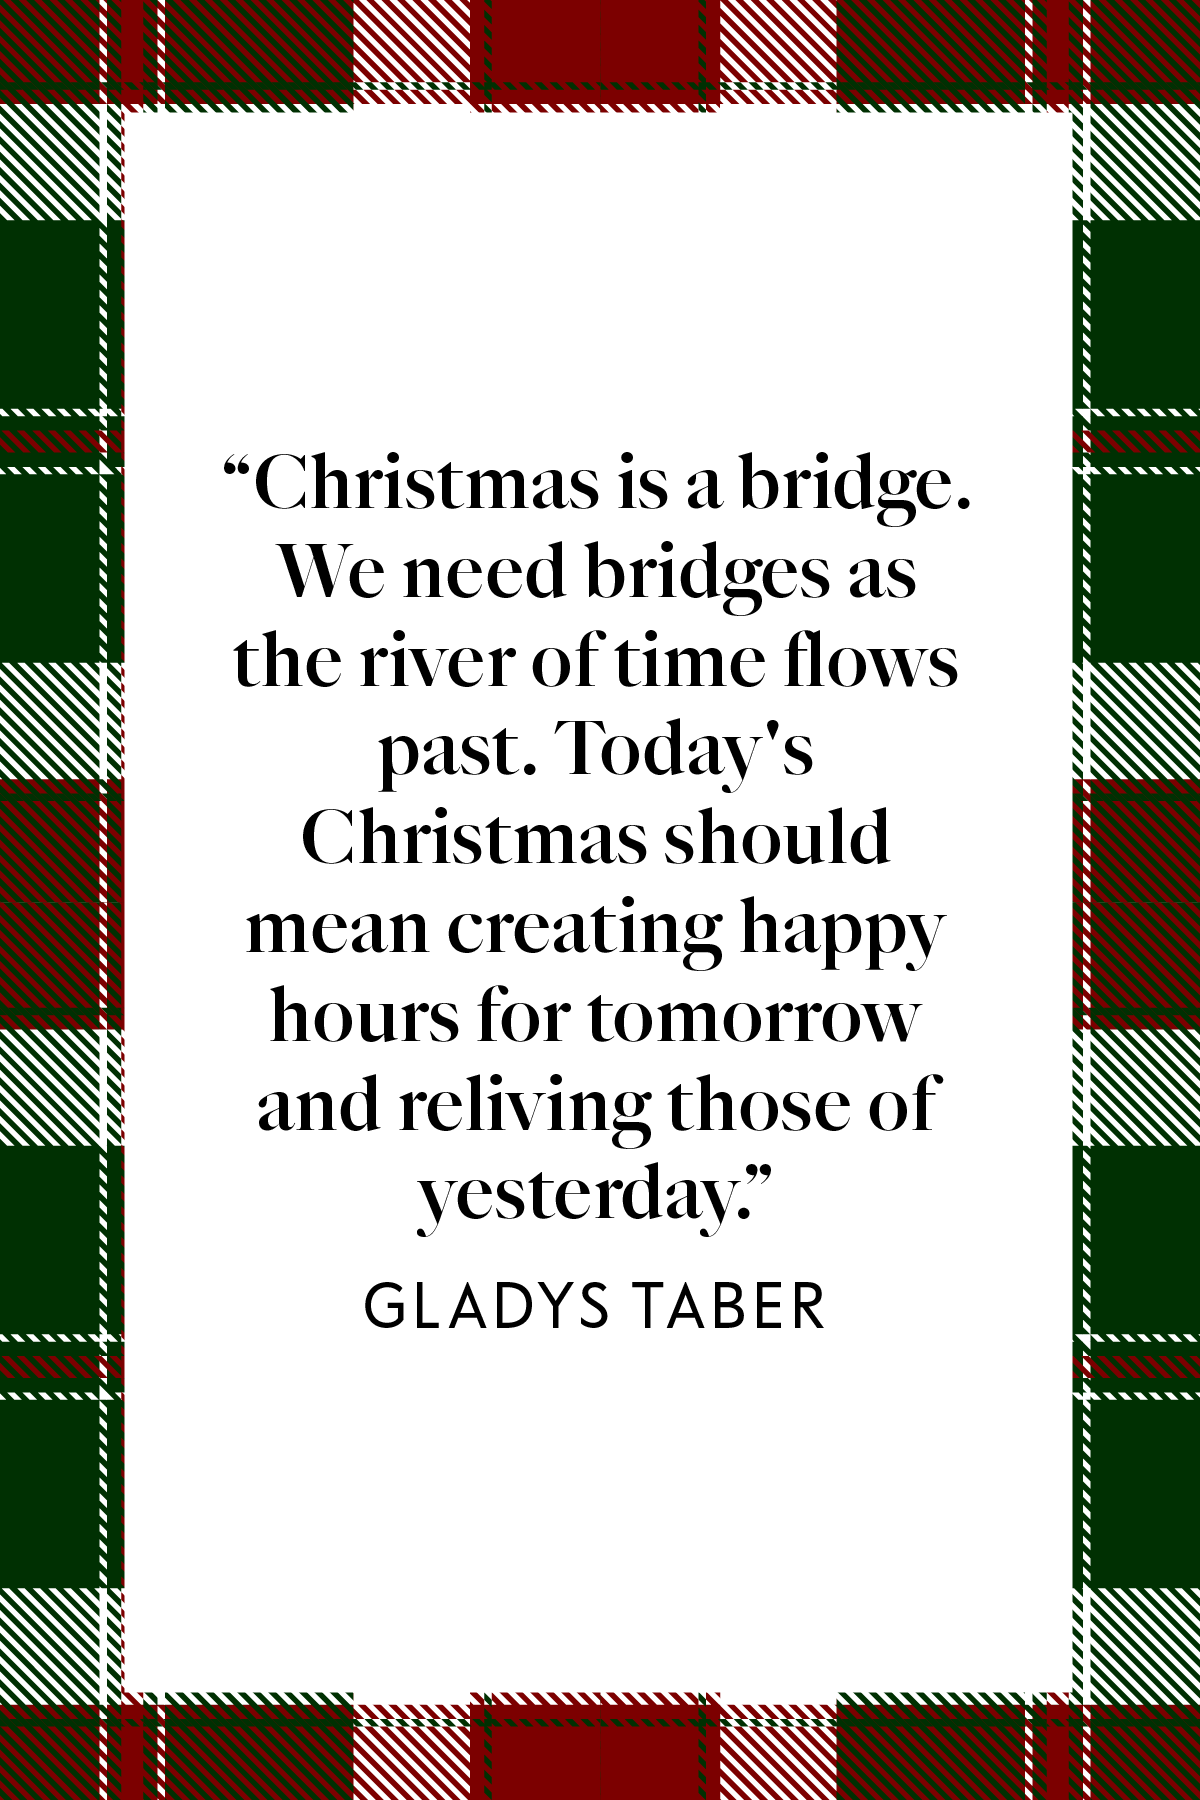 75 Best Christmas Quotes And Sayings 2021